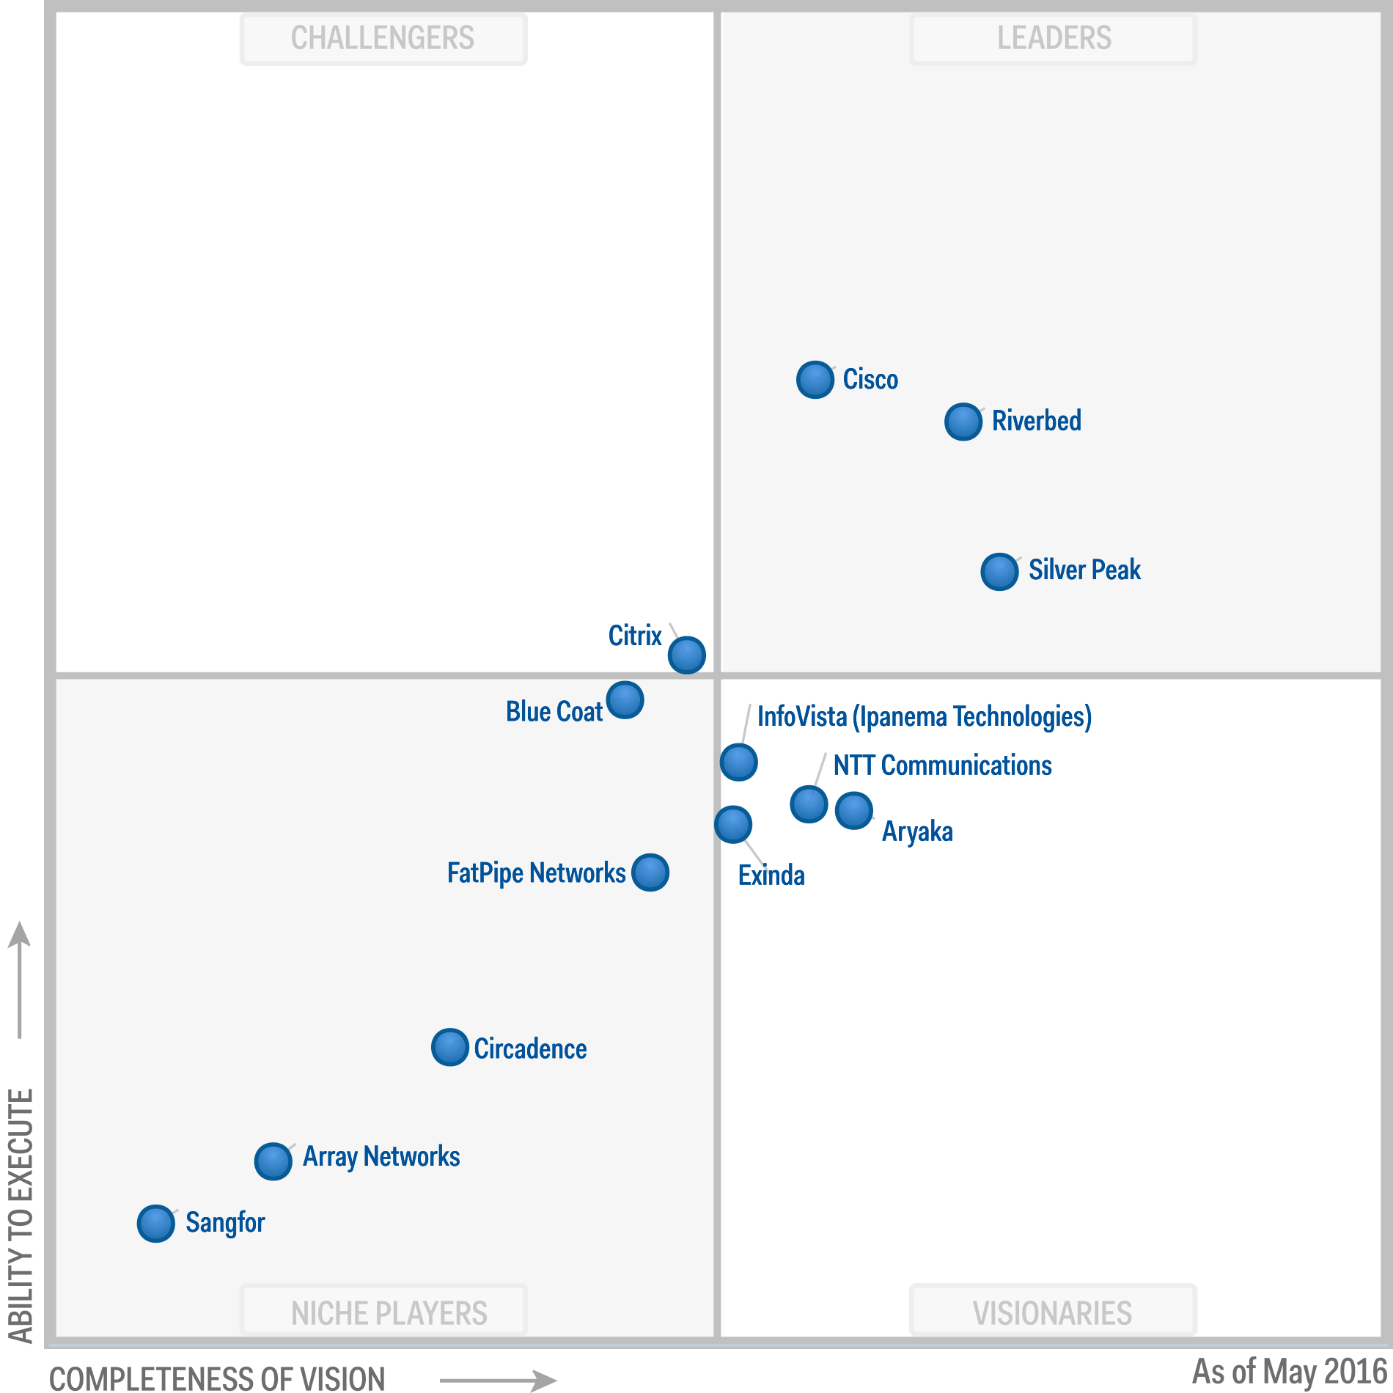 Magic Quadrant for WAN Optimization 2016 (G00276843)